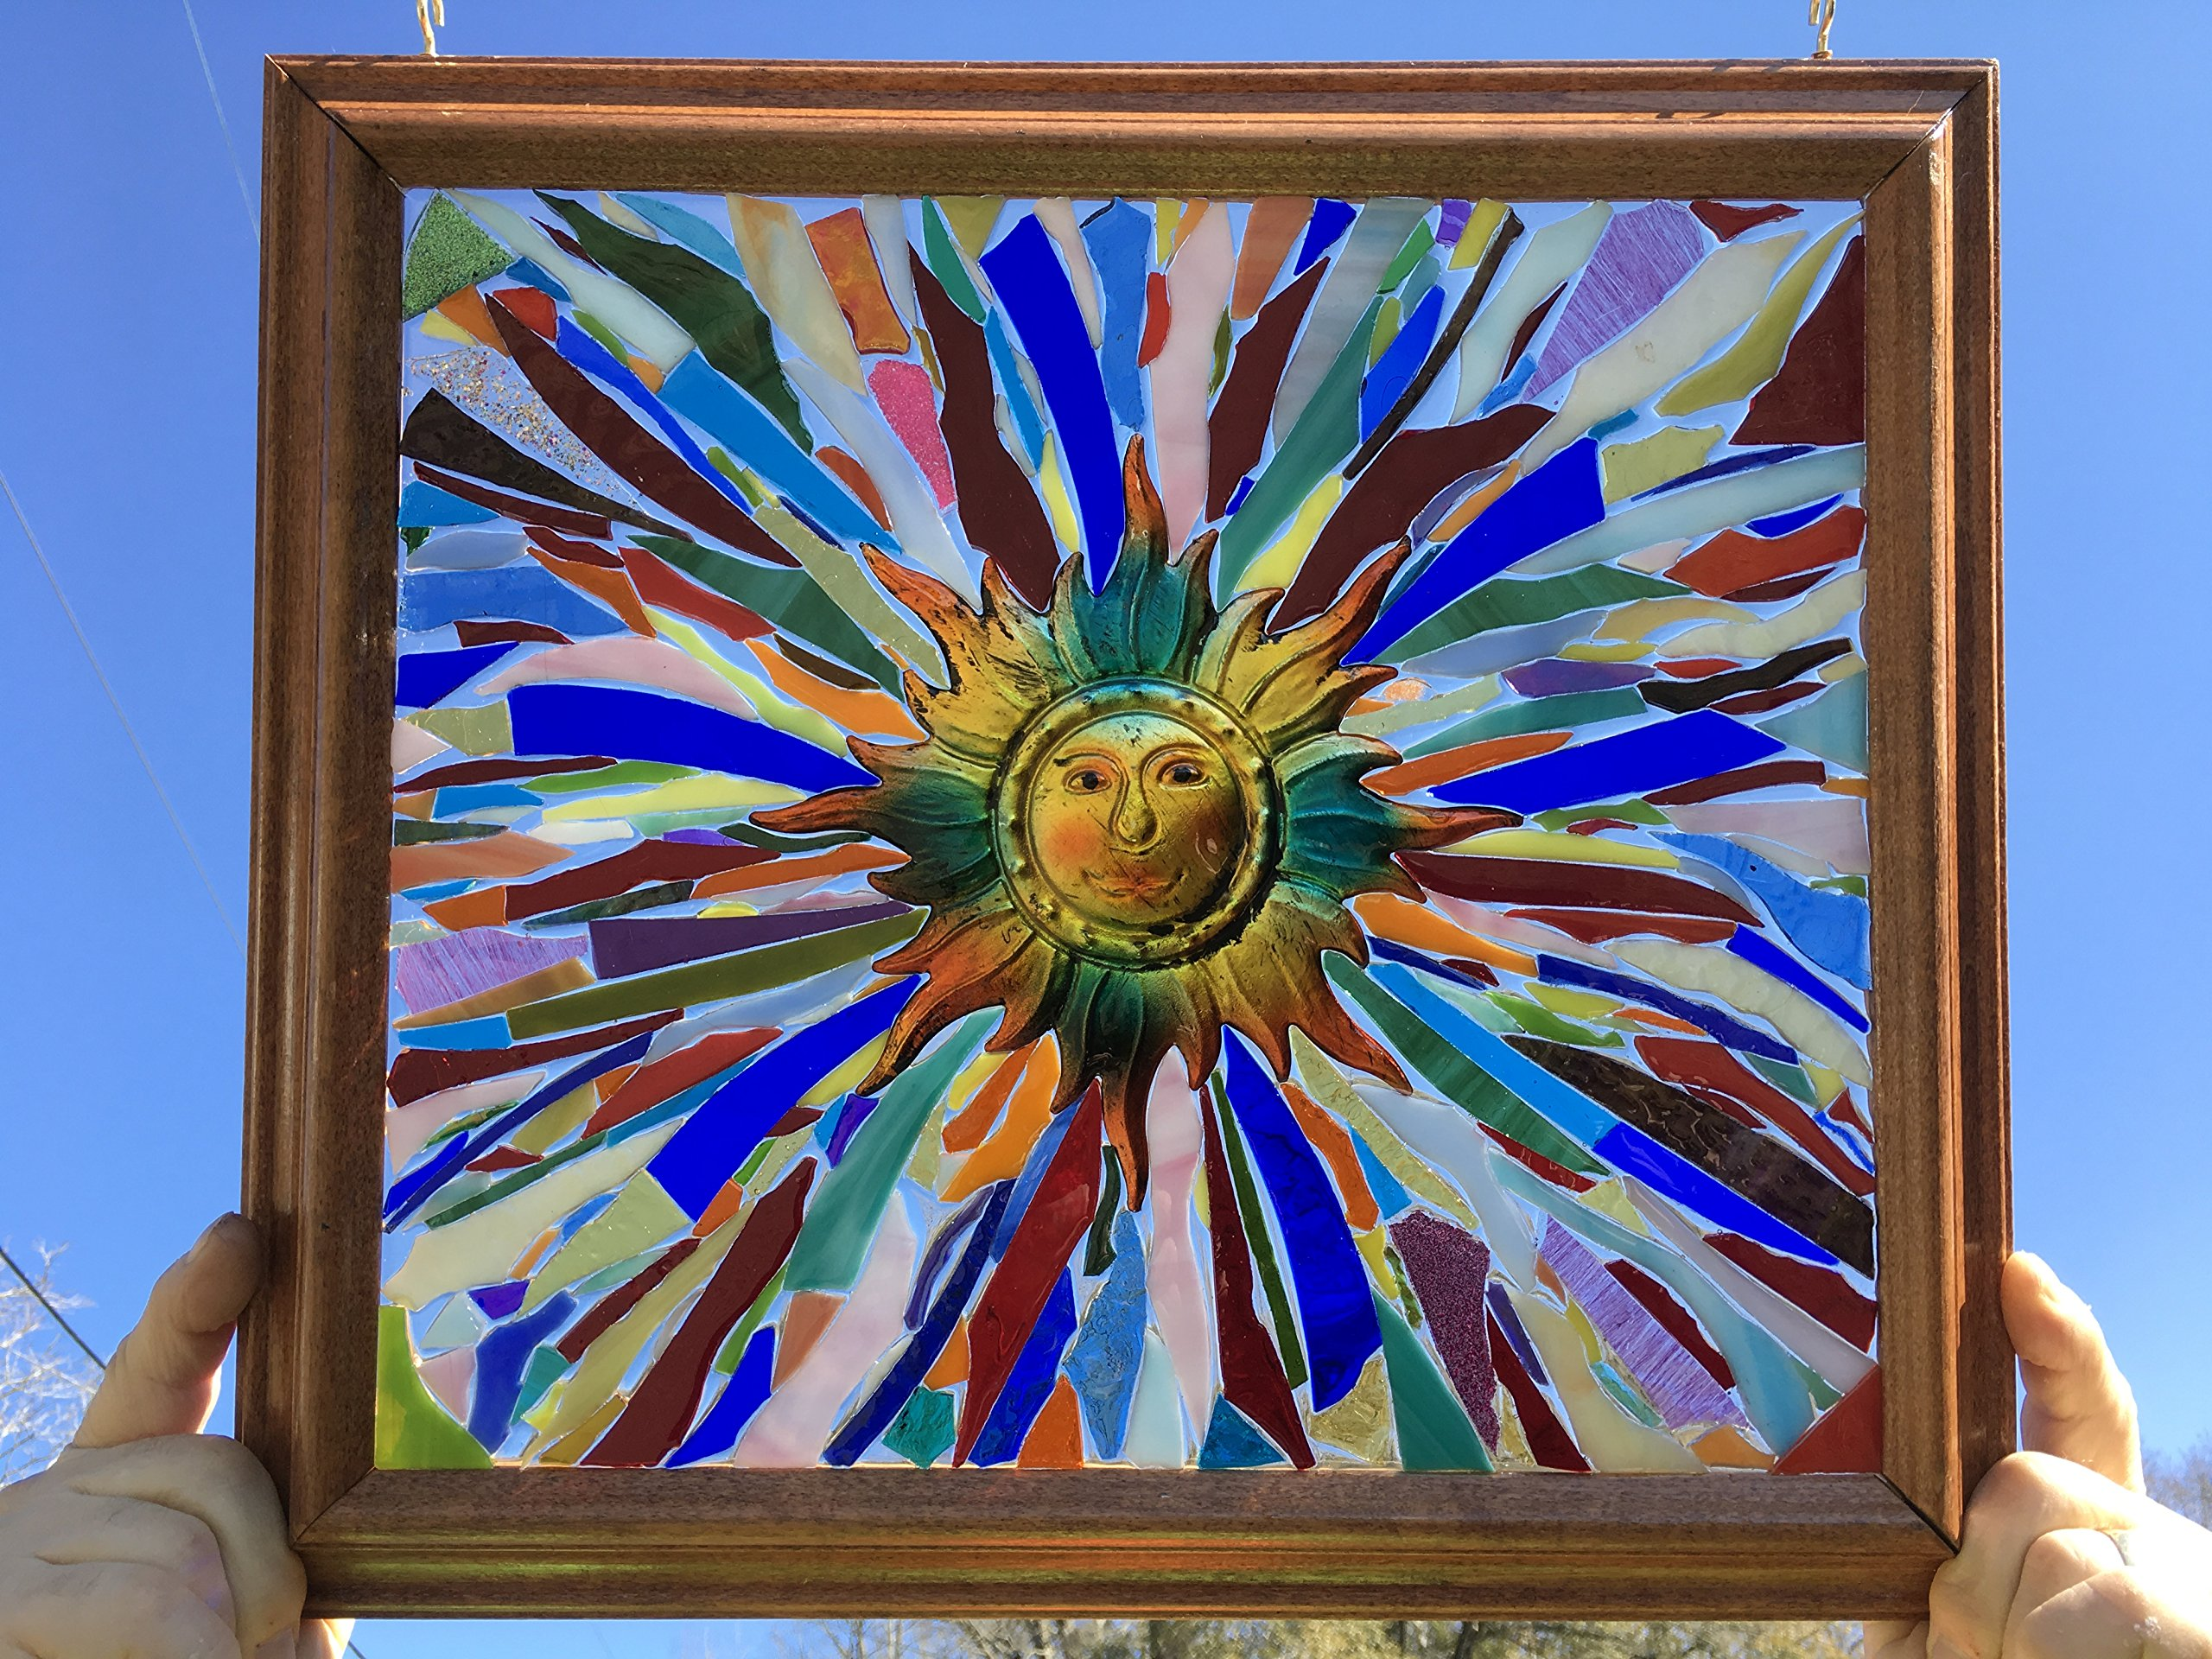 Sun Stained Glass Window Art Suncatcher by Mountain Mosaics